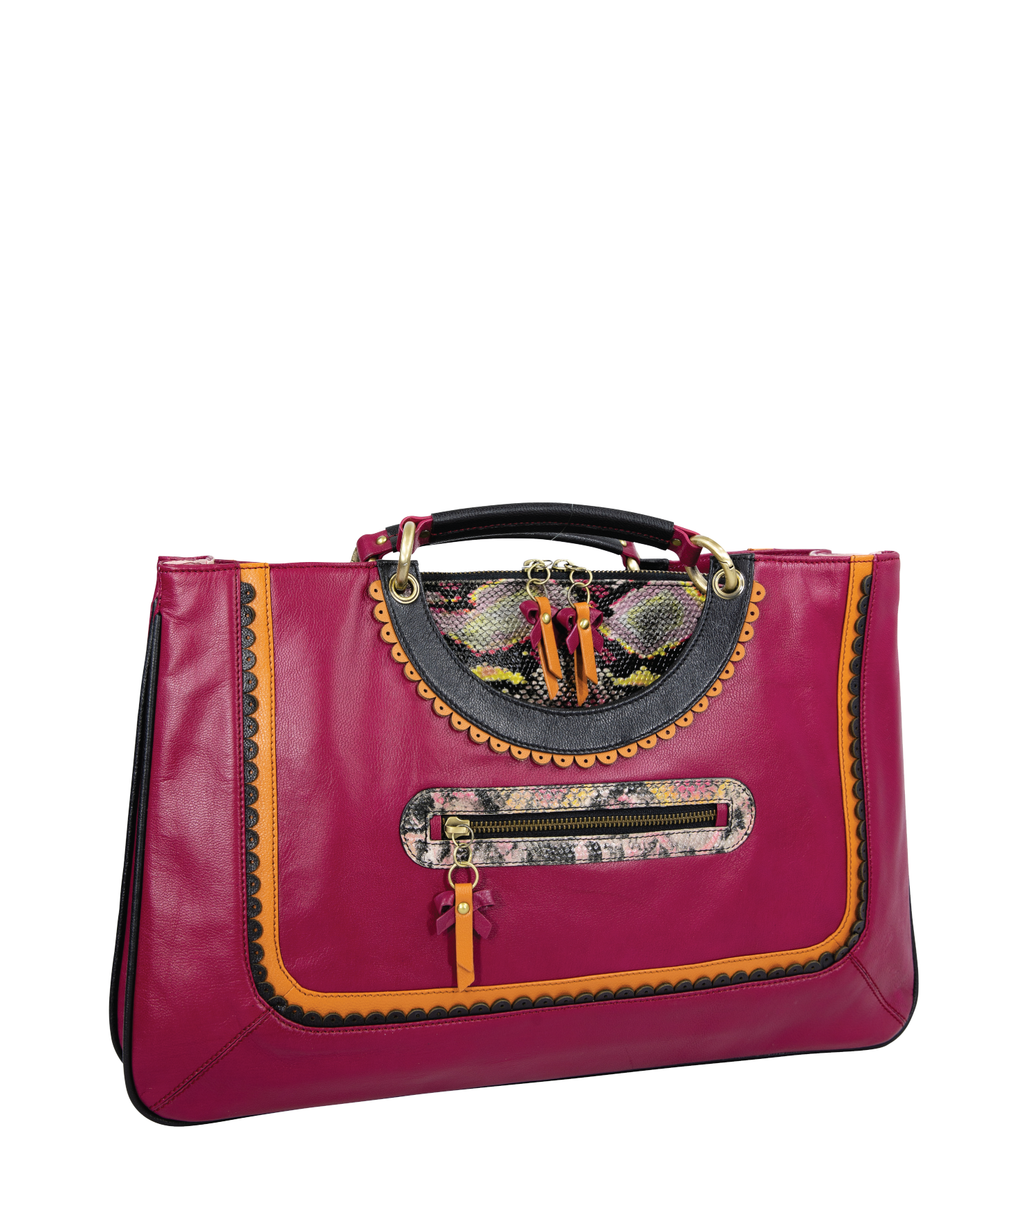 KISMET Work Bag - Berry